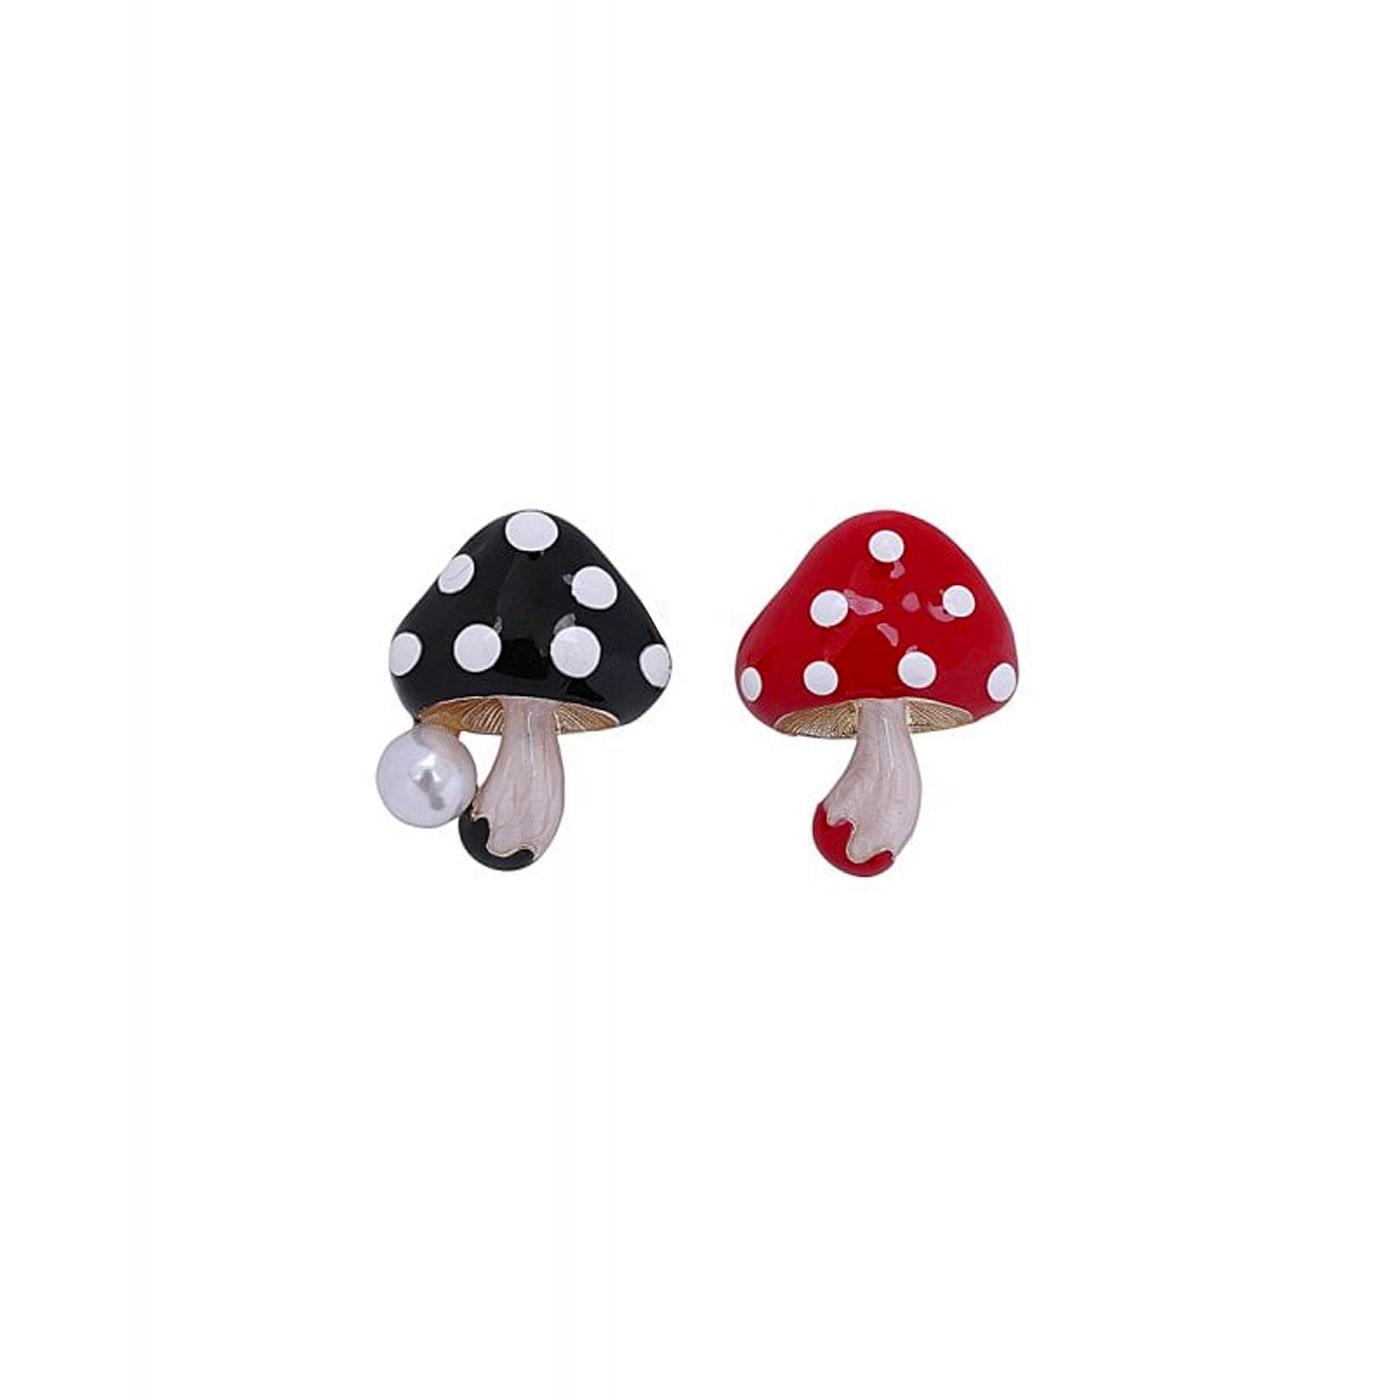 Mushies COLLECTIF Mushroom Brooch Set Red/Black